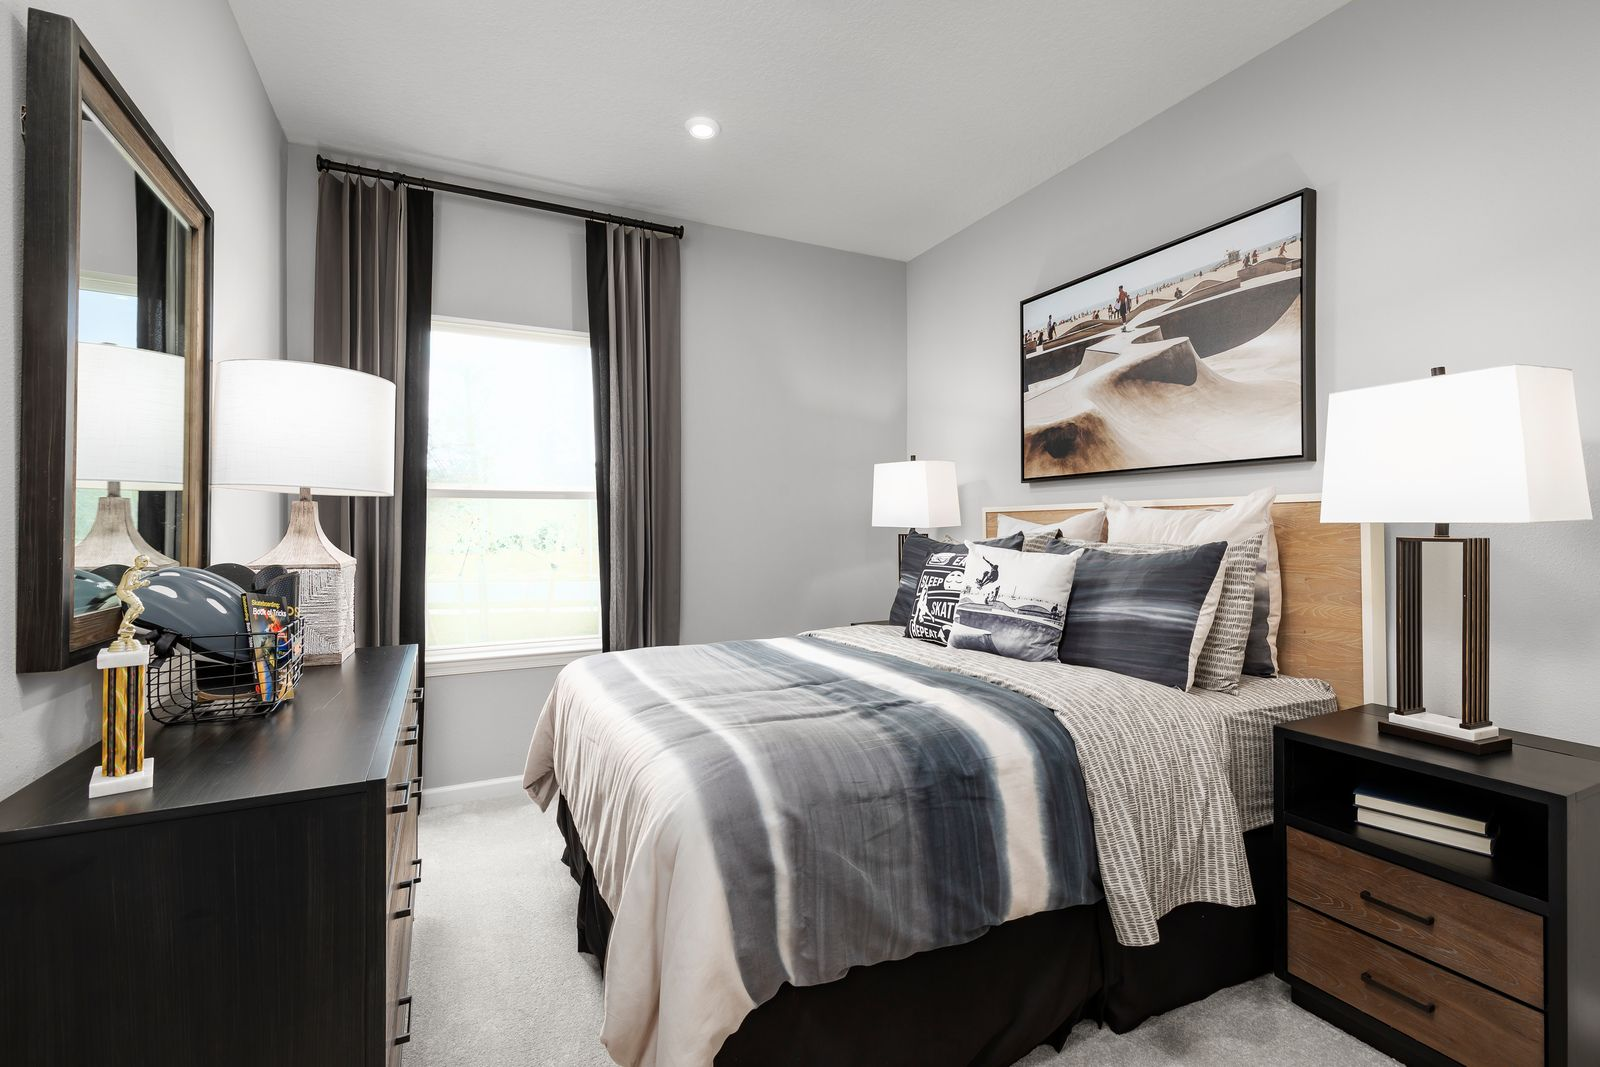 Bedroom featured in the Sandalwood By Ryan Homes in Indian River County, FL